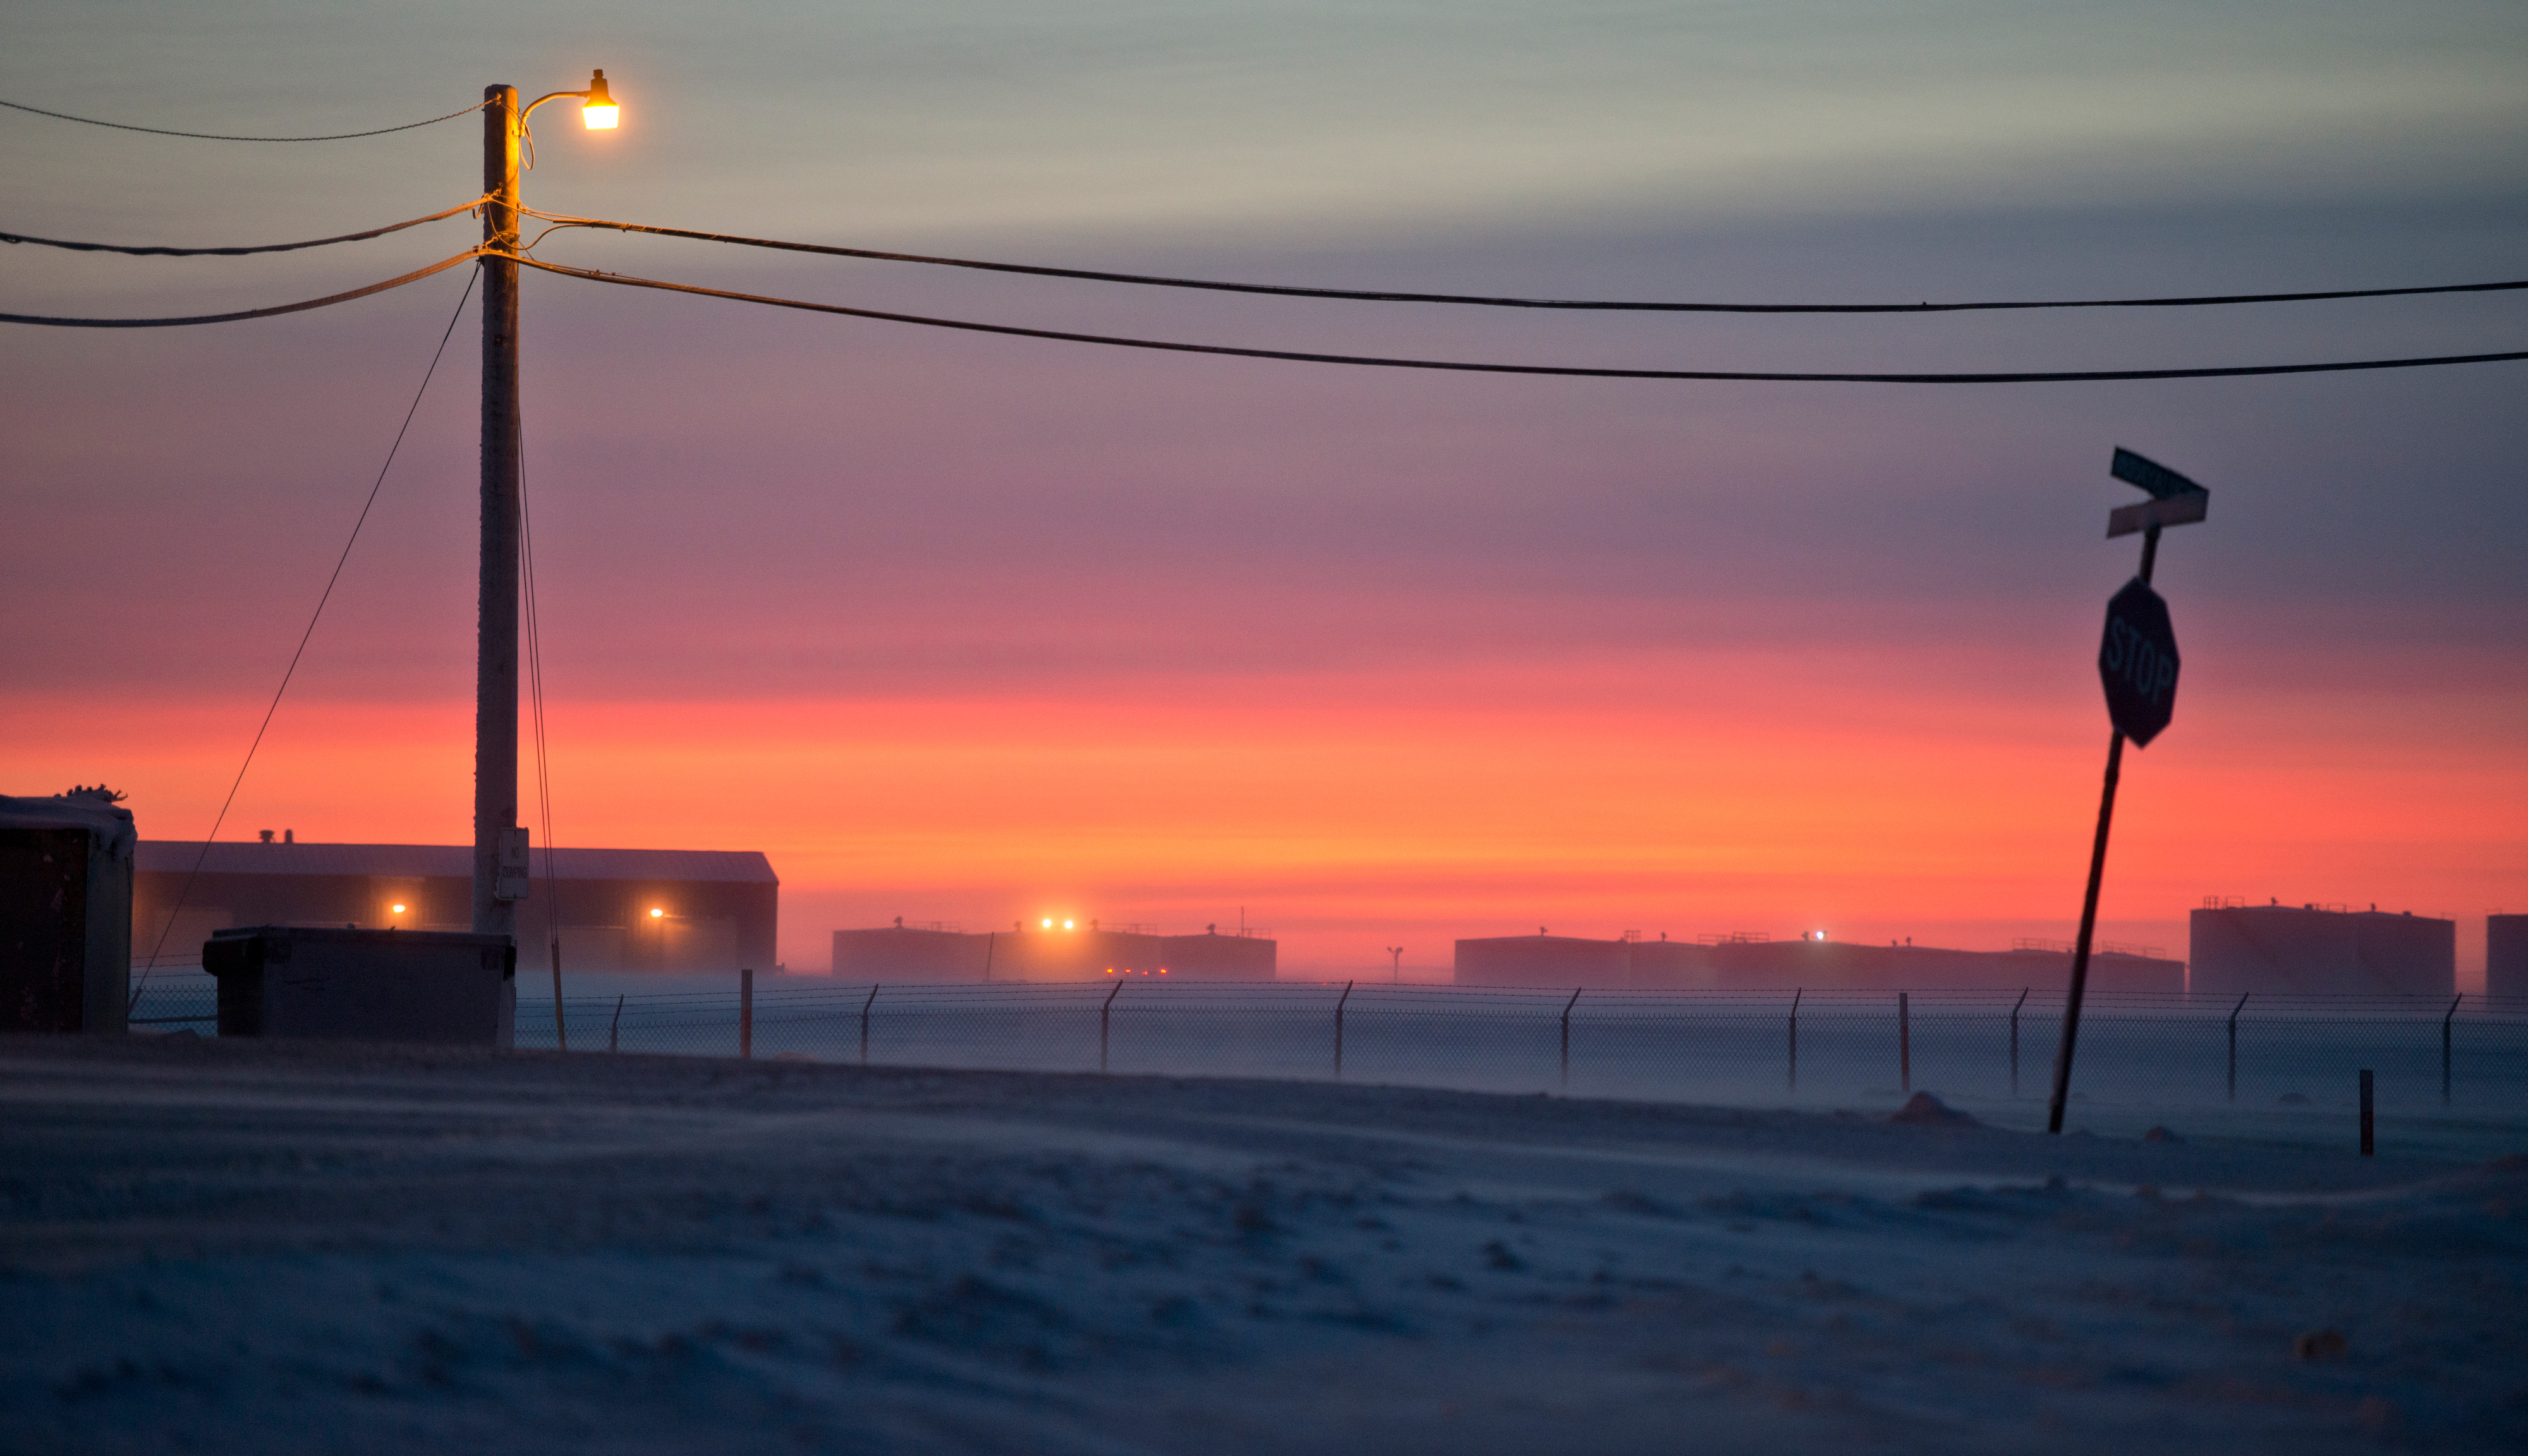 Midday light glows on the southern horizon as seen from Utqiaġvik, though the sun doesn't rise above it in December. Voters approved changing the name of the city of Barrow to Utqiagvik in October, a change which went into effect on December 1. In Alaska's northernmost city, however, residents remain divided about whether they name should've changed at all, whether the process was hurried, and whether the Utqiagvik is even the proper Inupiaq place name. Photographed on Wednesday, December 14, 2016. (Marc Lester / Alaska Dispatch News)